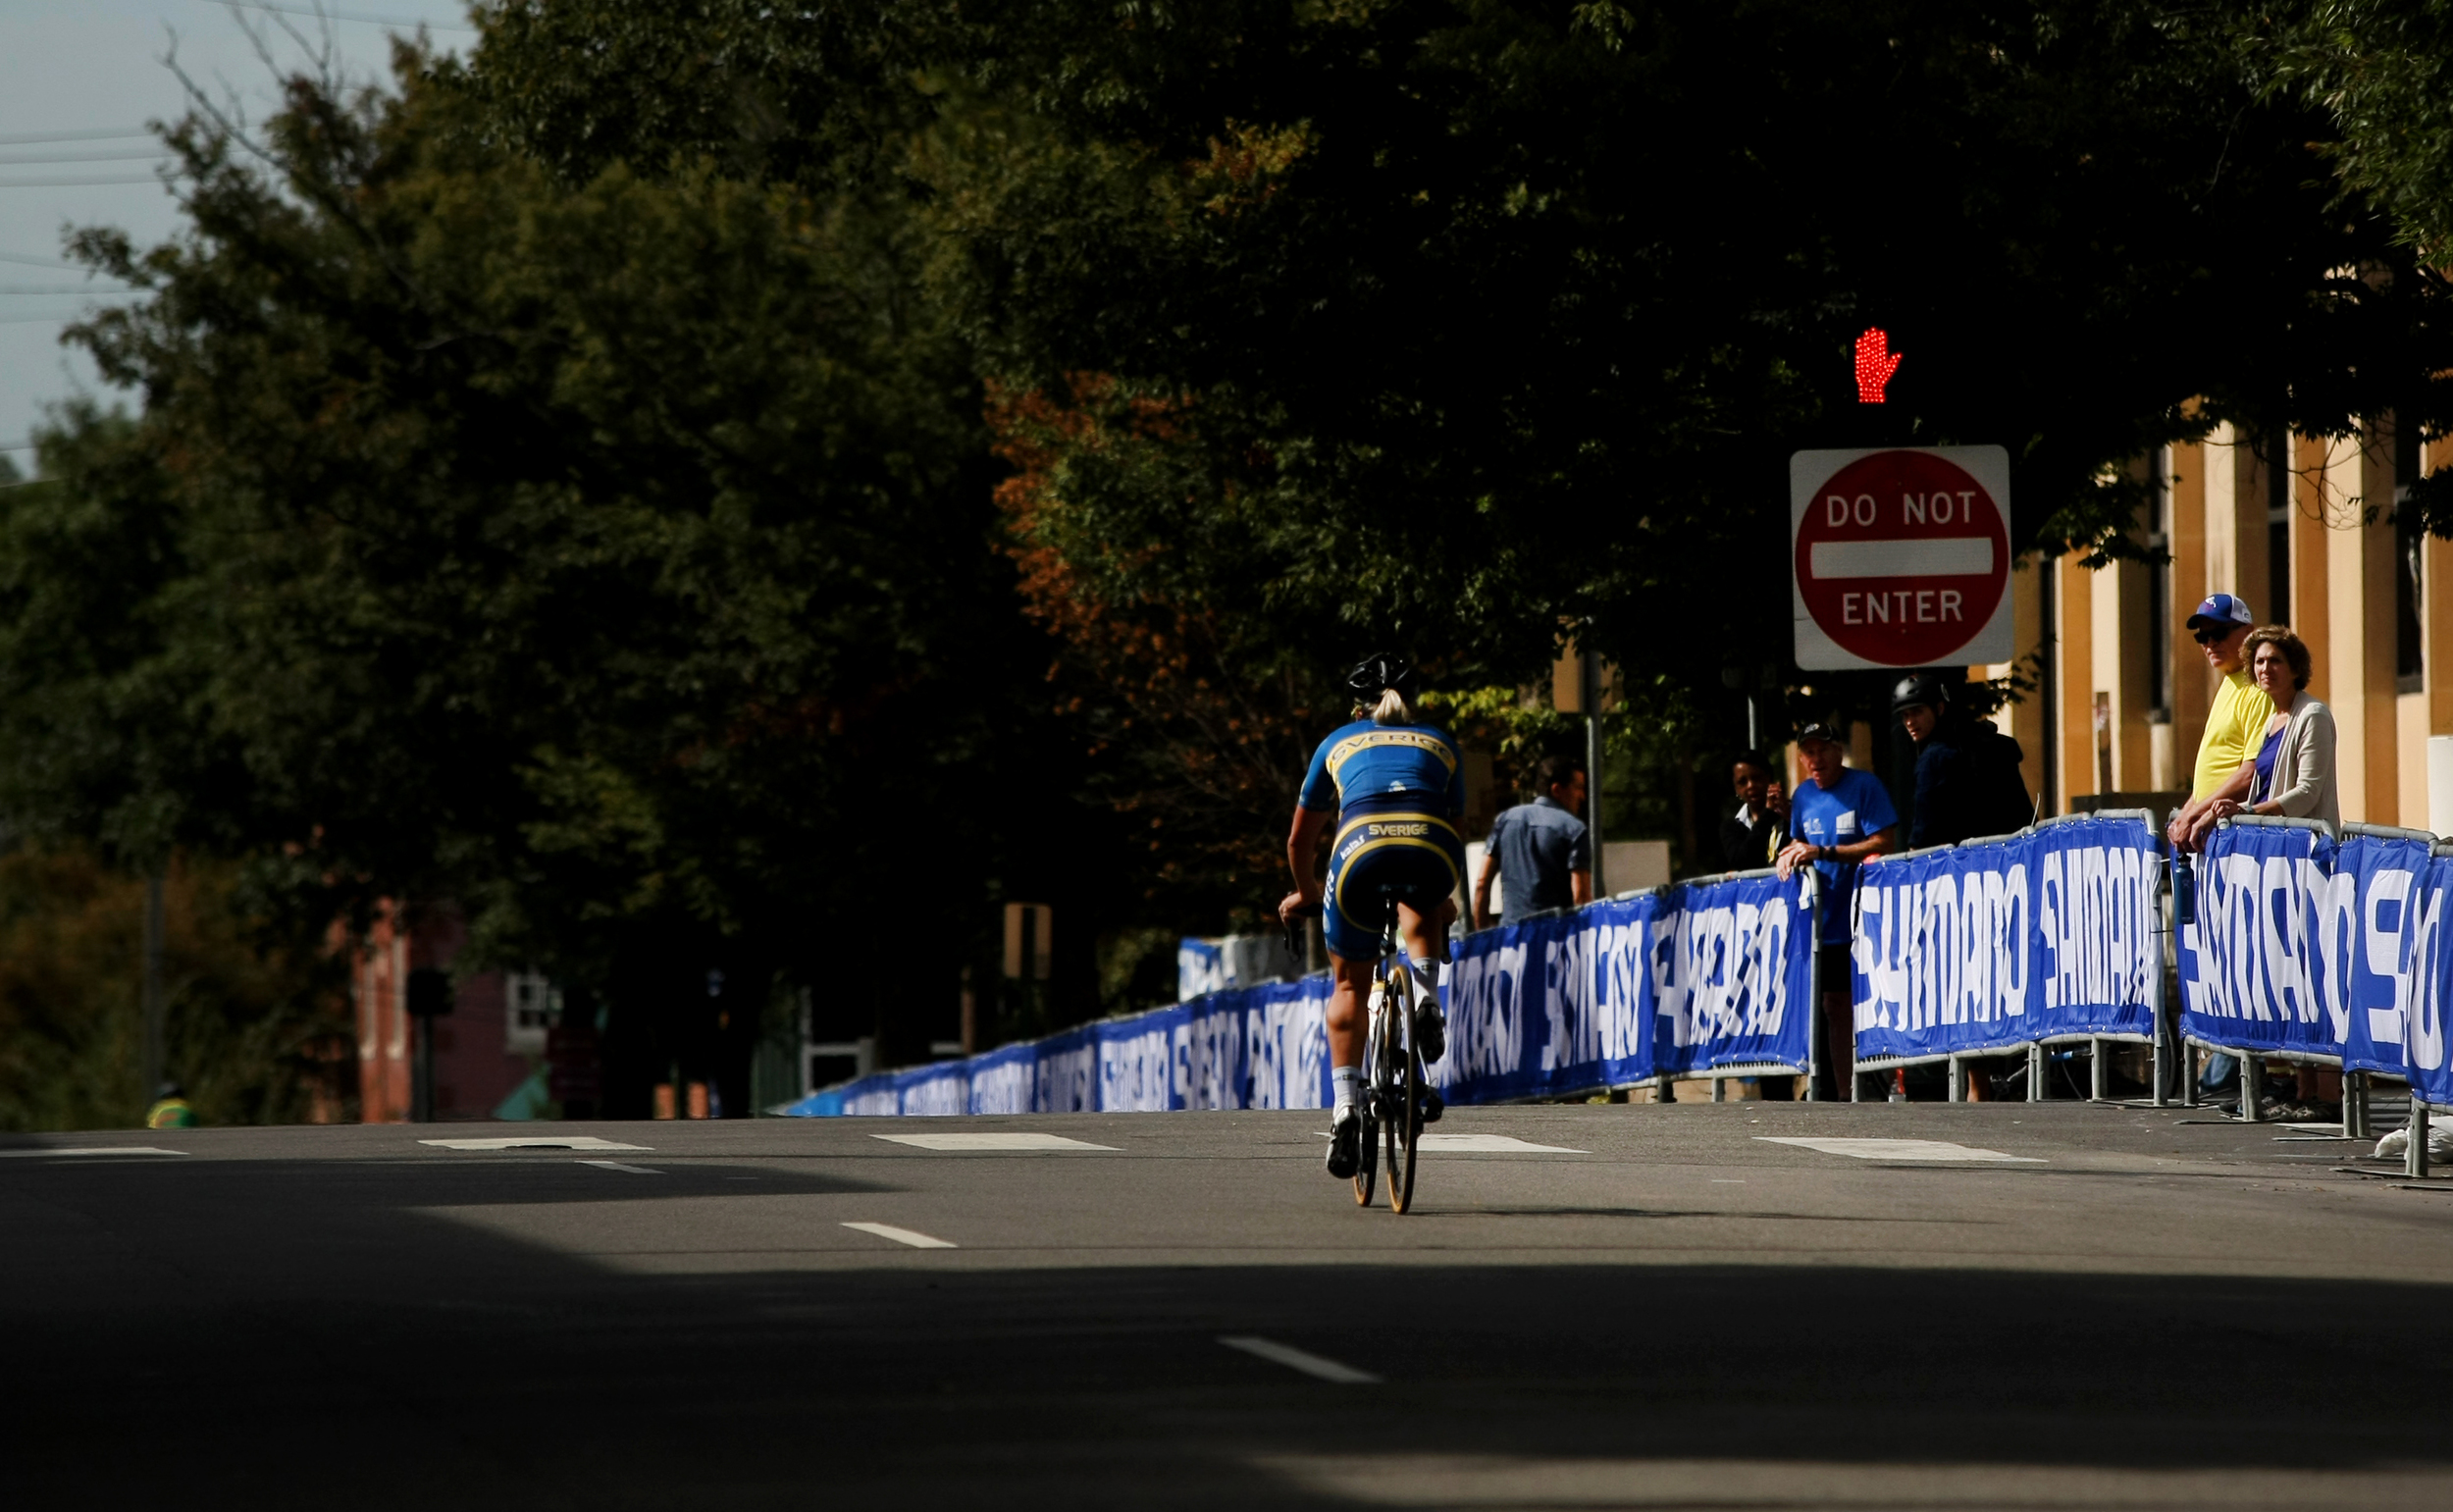 Tomas Båbek, of the Czech Republic,rides during the Road Circuit Training portion of the UCI Road World Championships cycling races in Richmond, Va., Thursday, Sept. 24, 2015. (AP Photo/Jason Hirschfeld)